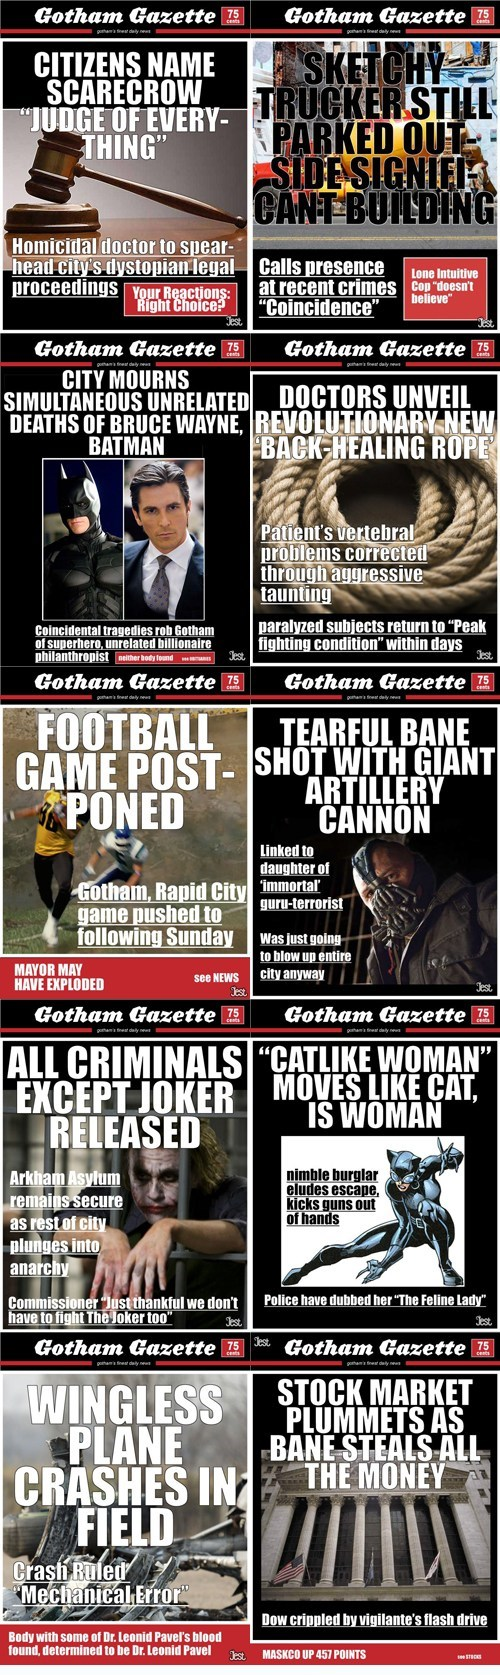 Gotham Newspaper Headlines